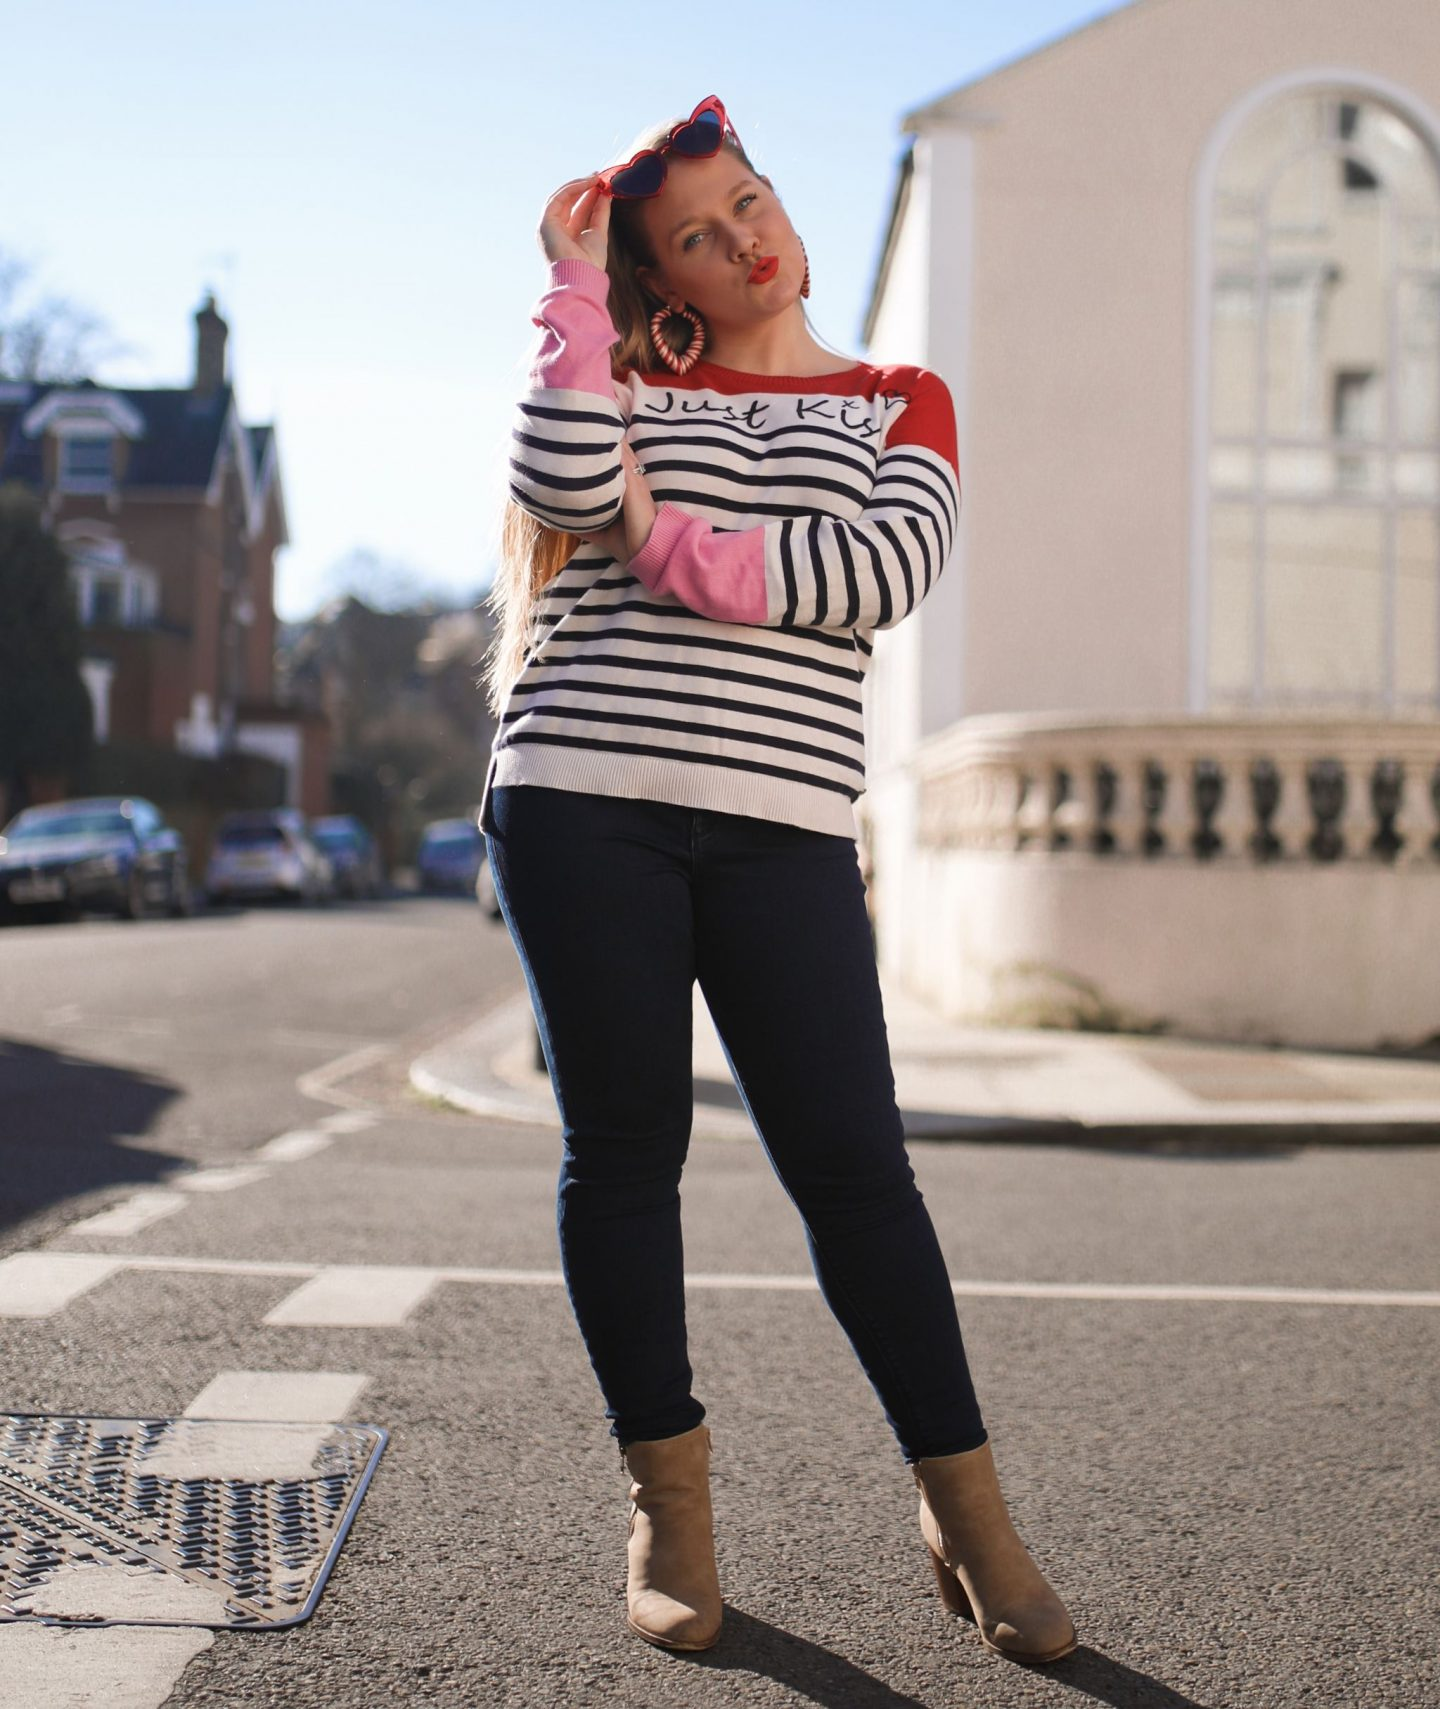 Katie Heath, KALANCHOE wearing Just Kiss Striped jumper for Valentines Day